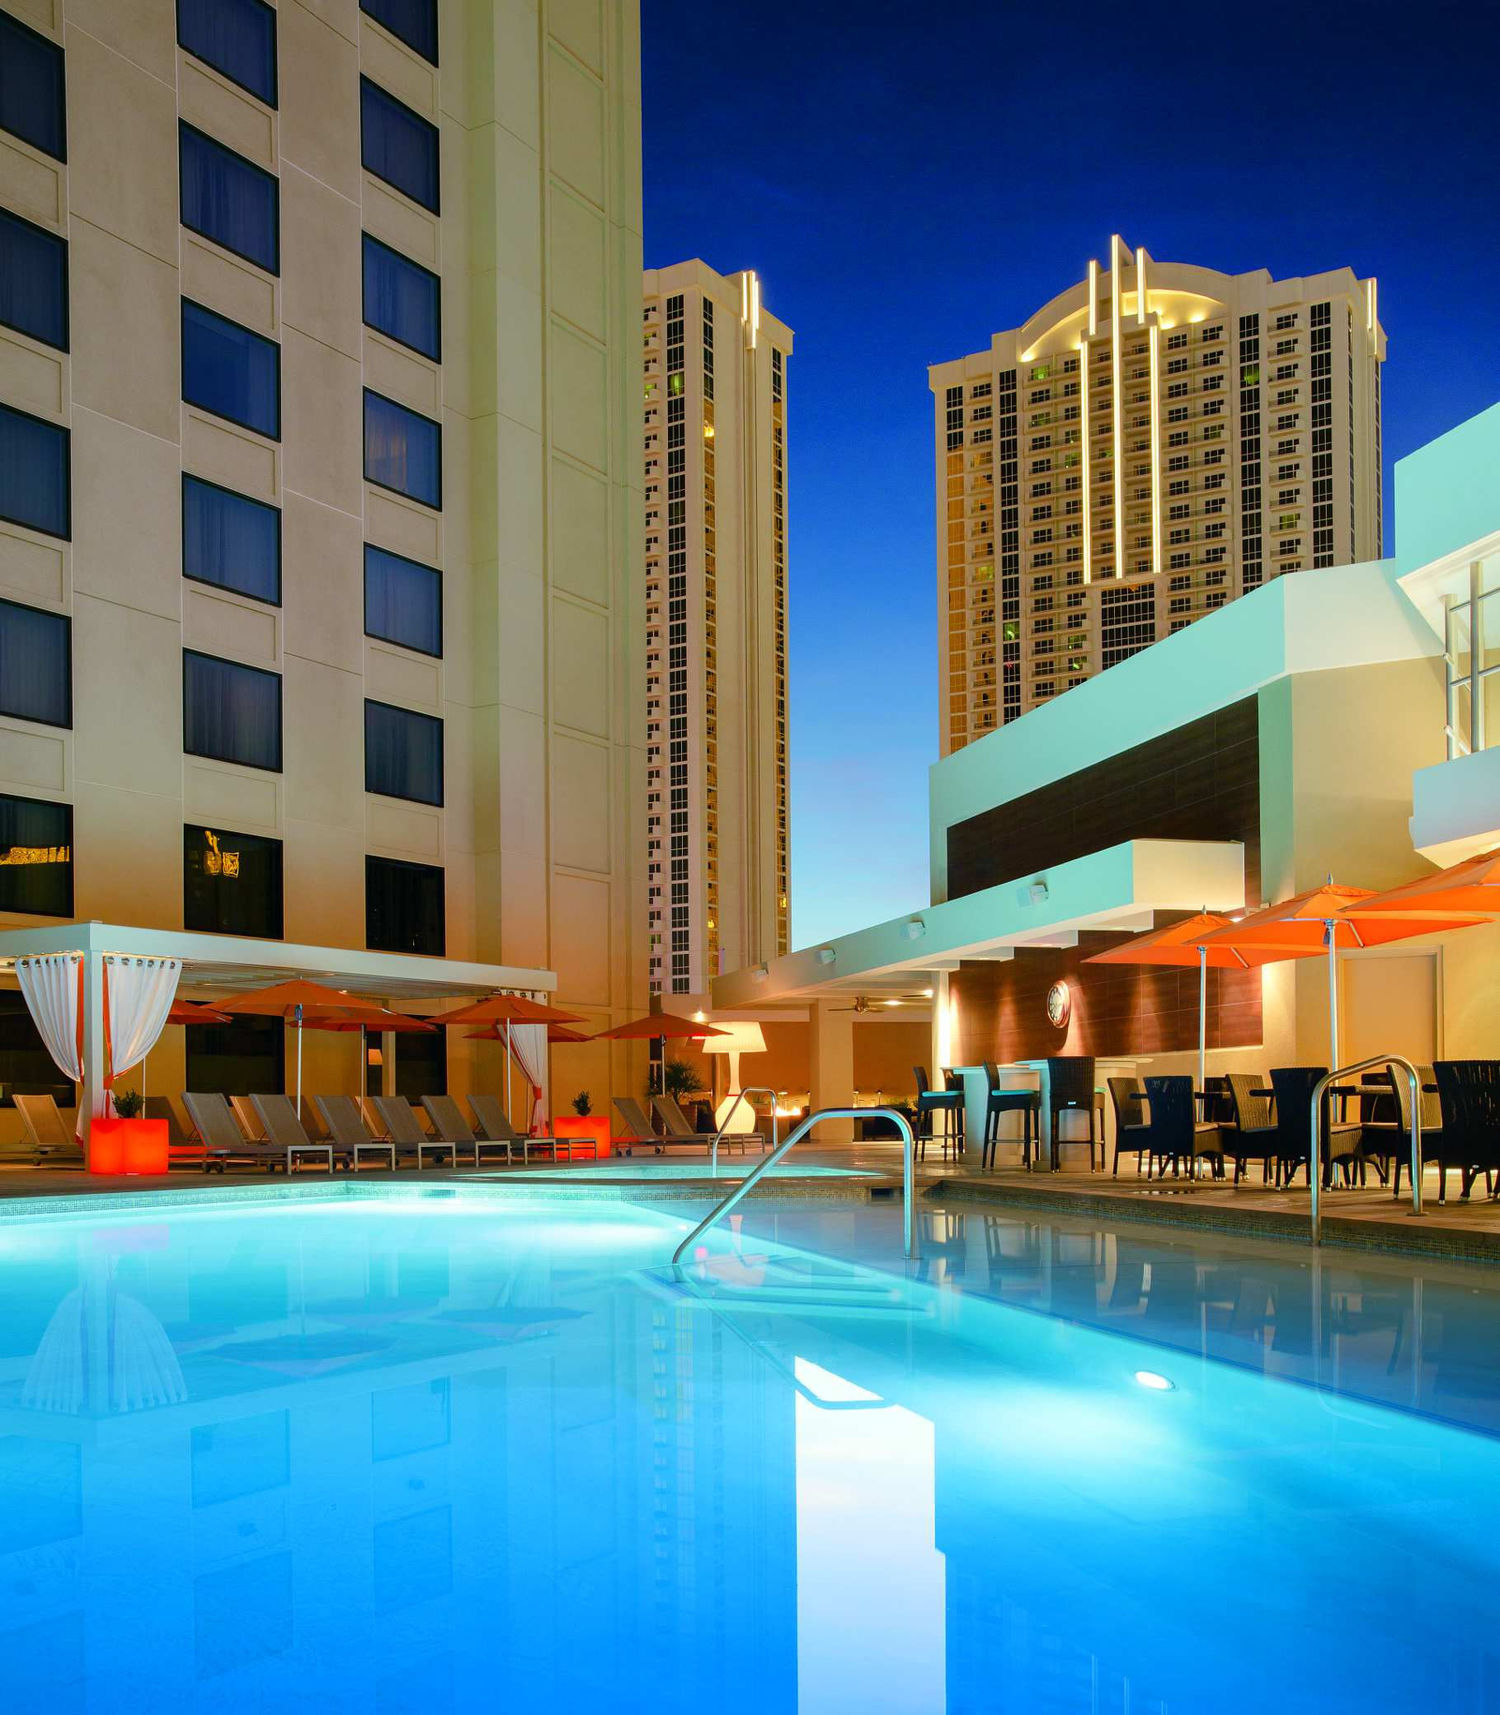 Marriotts Grand Chateau Las Vegas NV Jobs  Hospitality